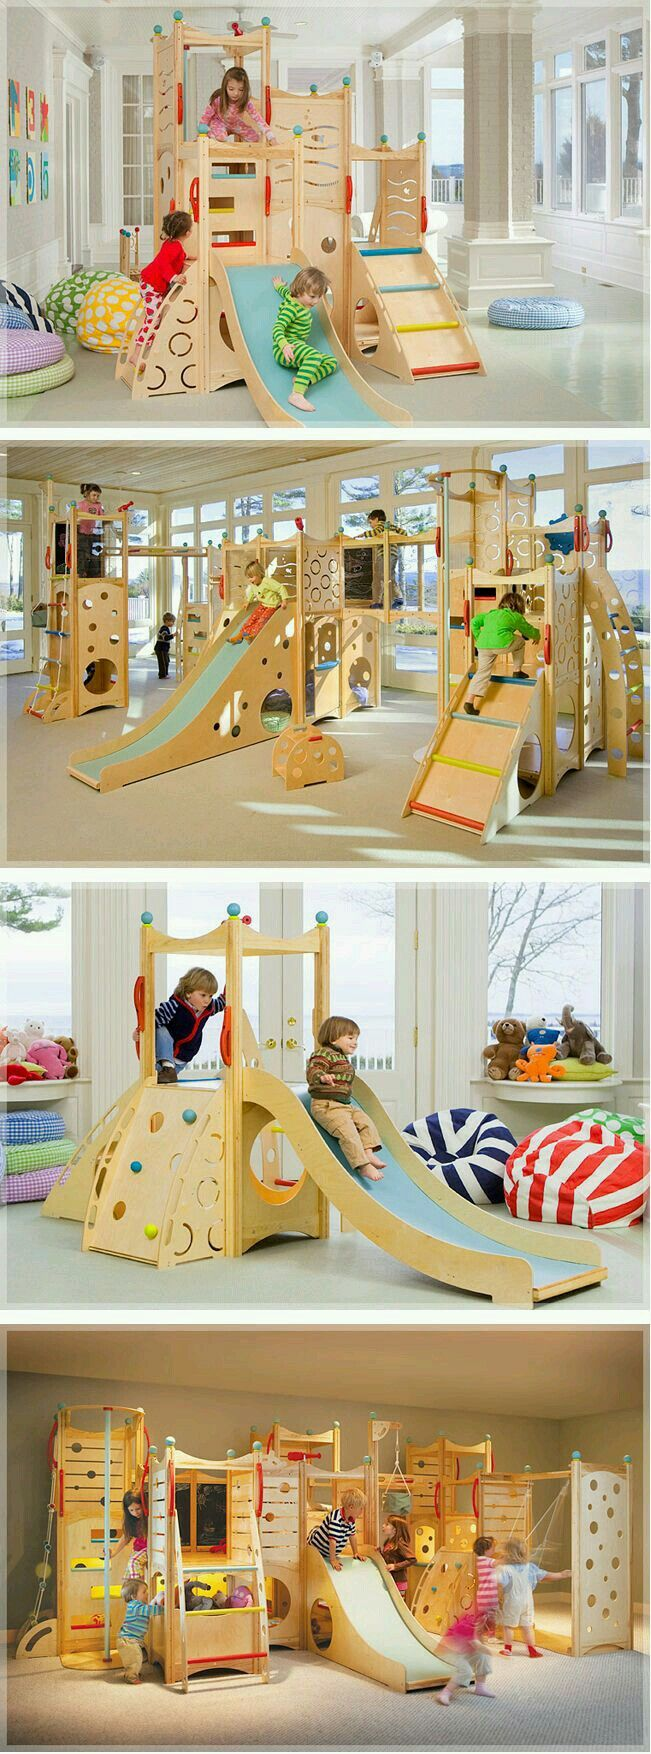 Classy Clutter: DIY Kids Christmas Gift Ideas - Totally Inspired Tuesday by  Mallory | projects to try | Pinterest | Gym, Frugal and Indoor jungle gym